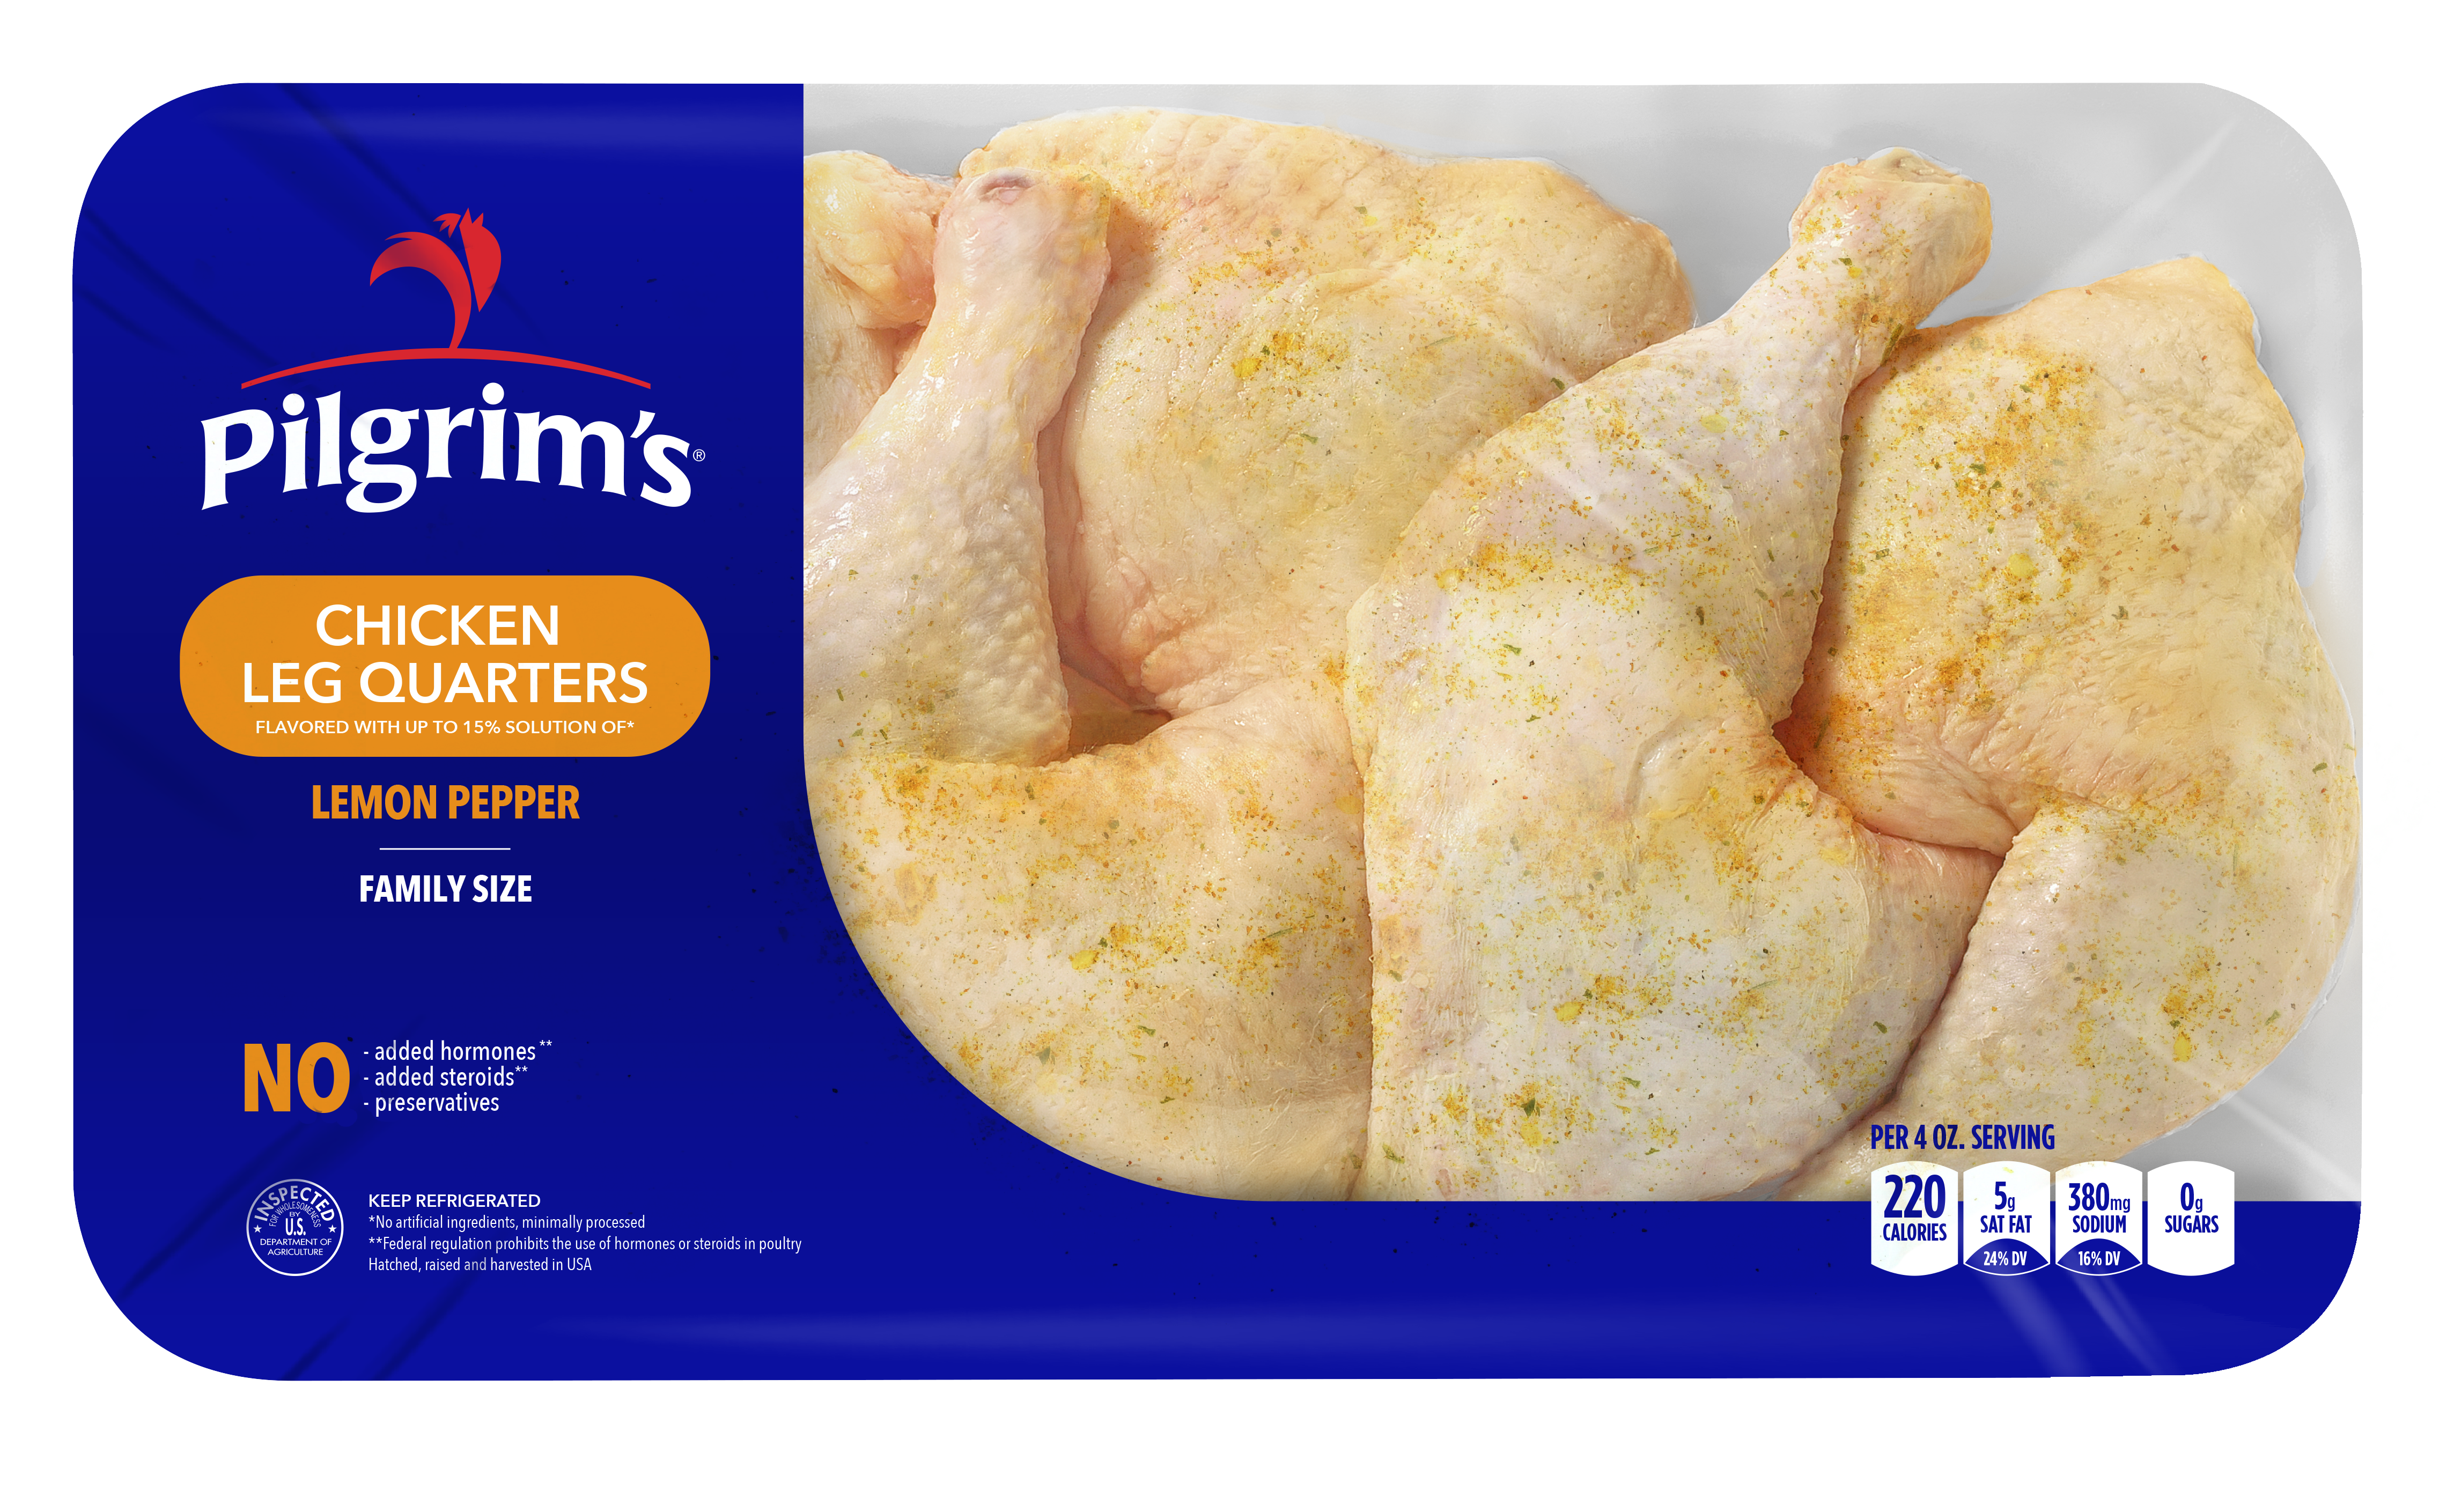 Pilgrim's Lemon Pepper Leg Quarters